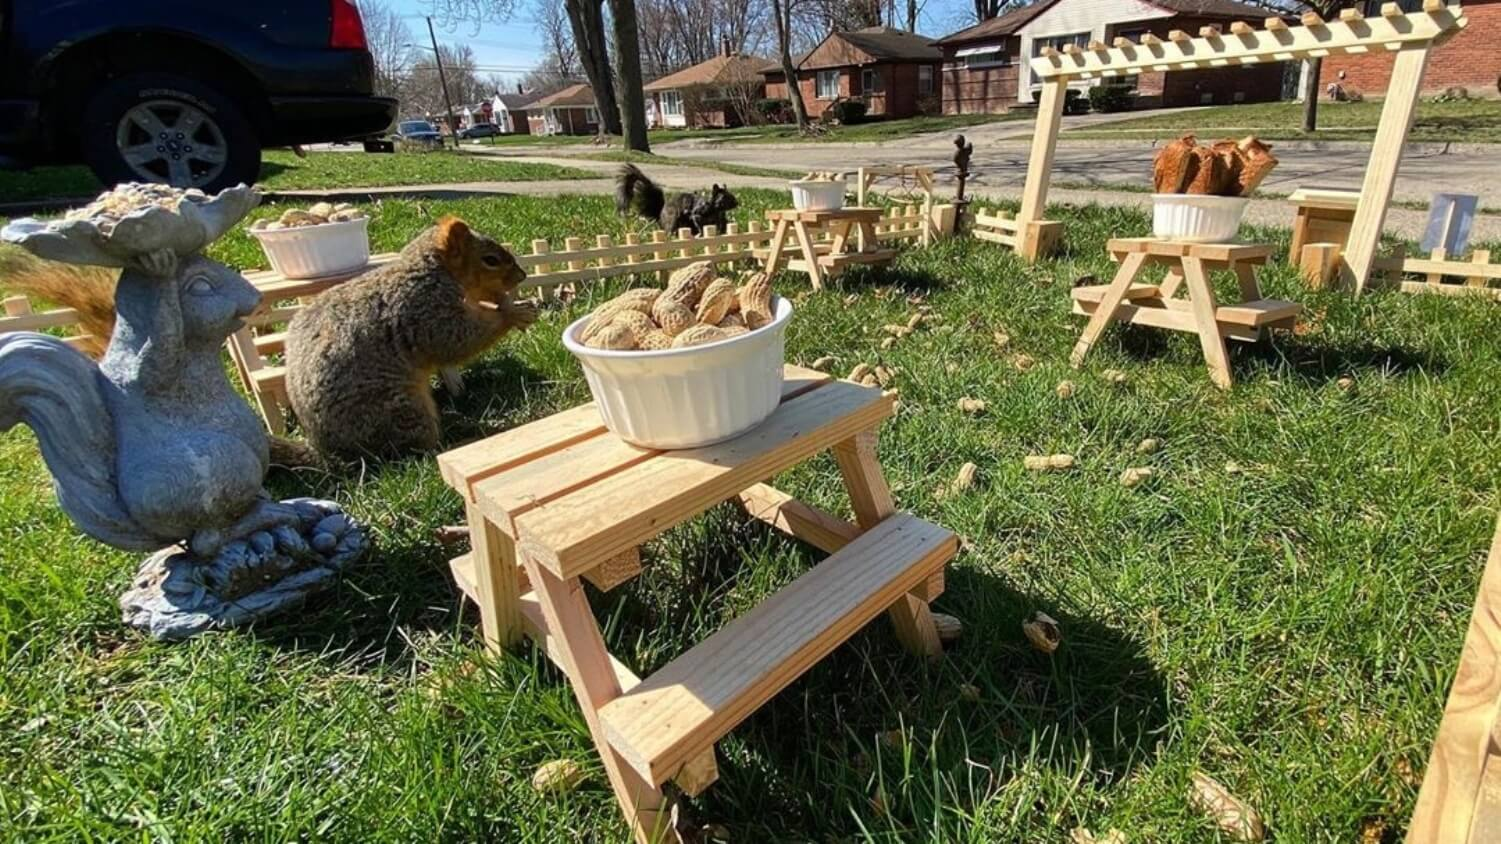 This Man is Building Tiny Restaurants for Squirrels During Quarantine